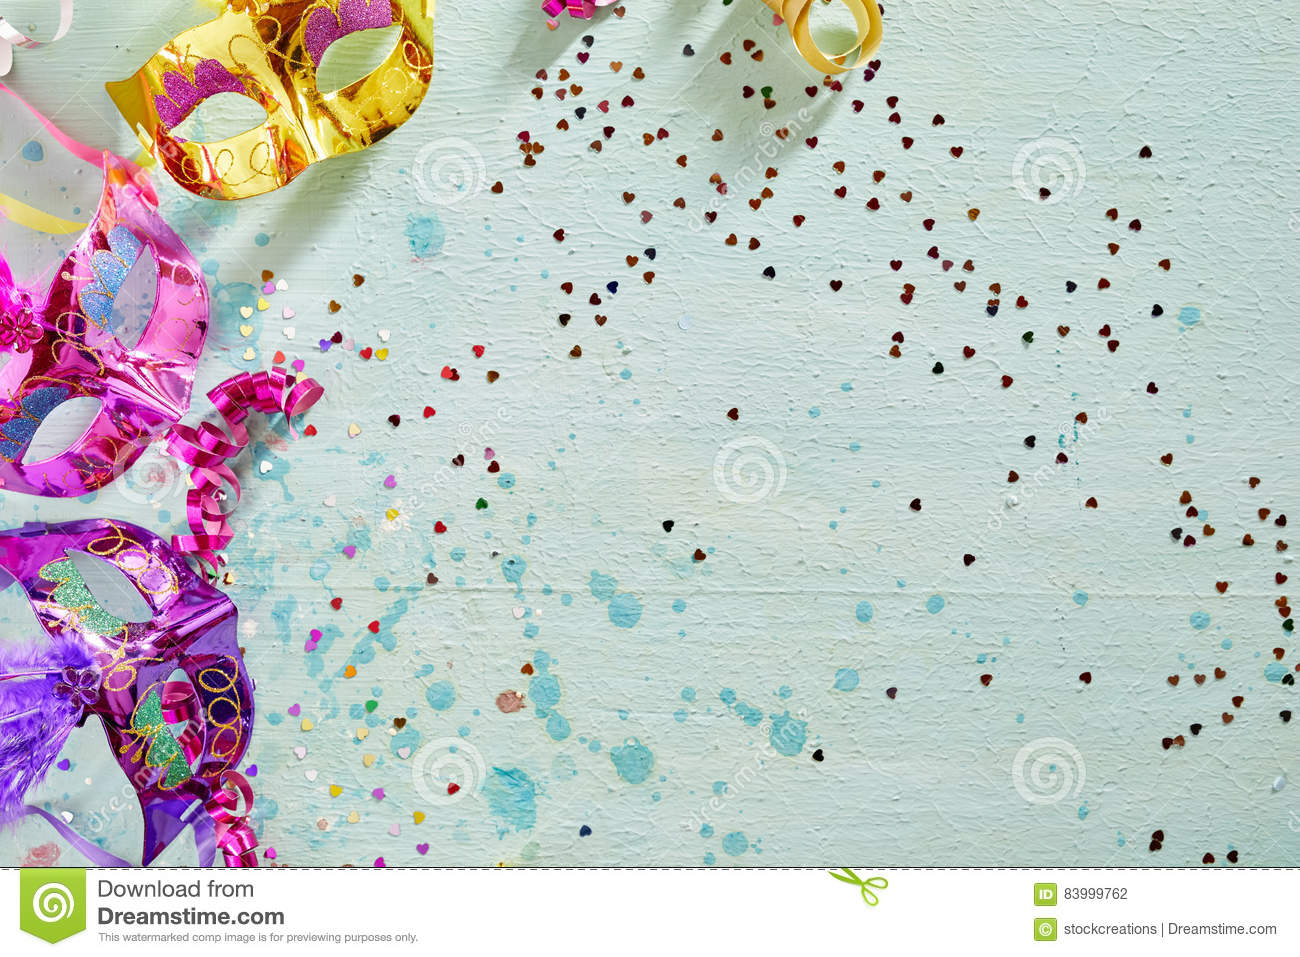 Brightly Colored Carnival Or Mardi Gras Border With Metallic Foil Eye Masks Decorated Feathers